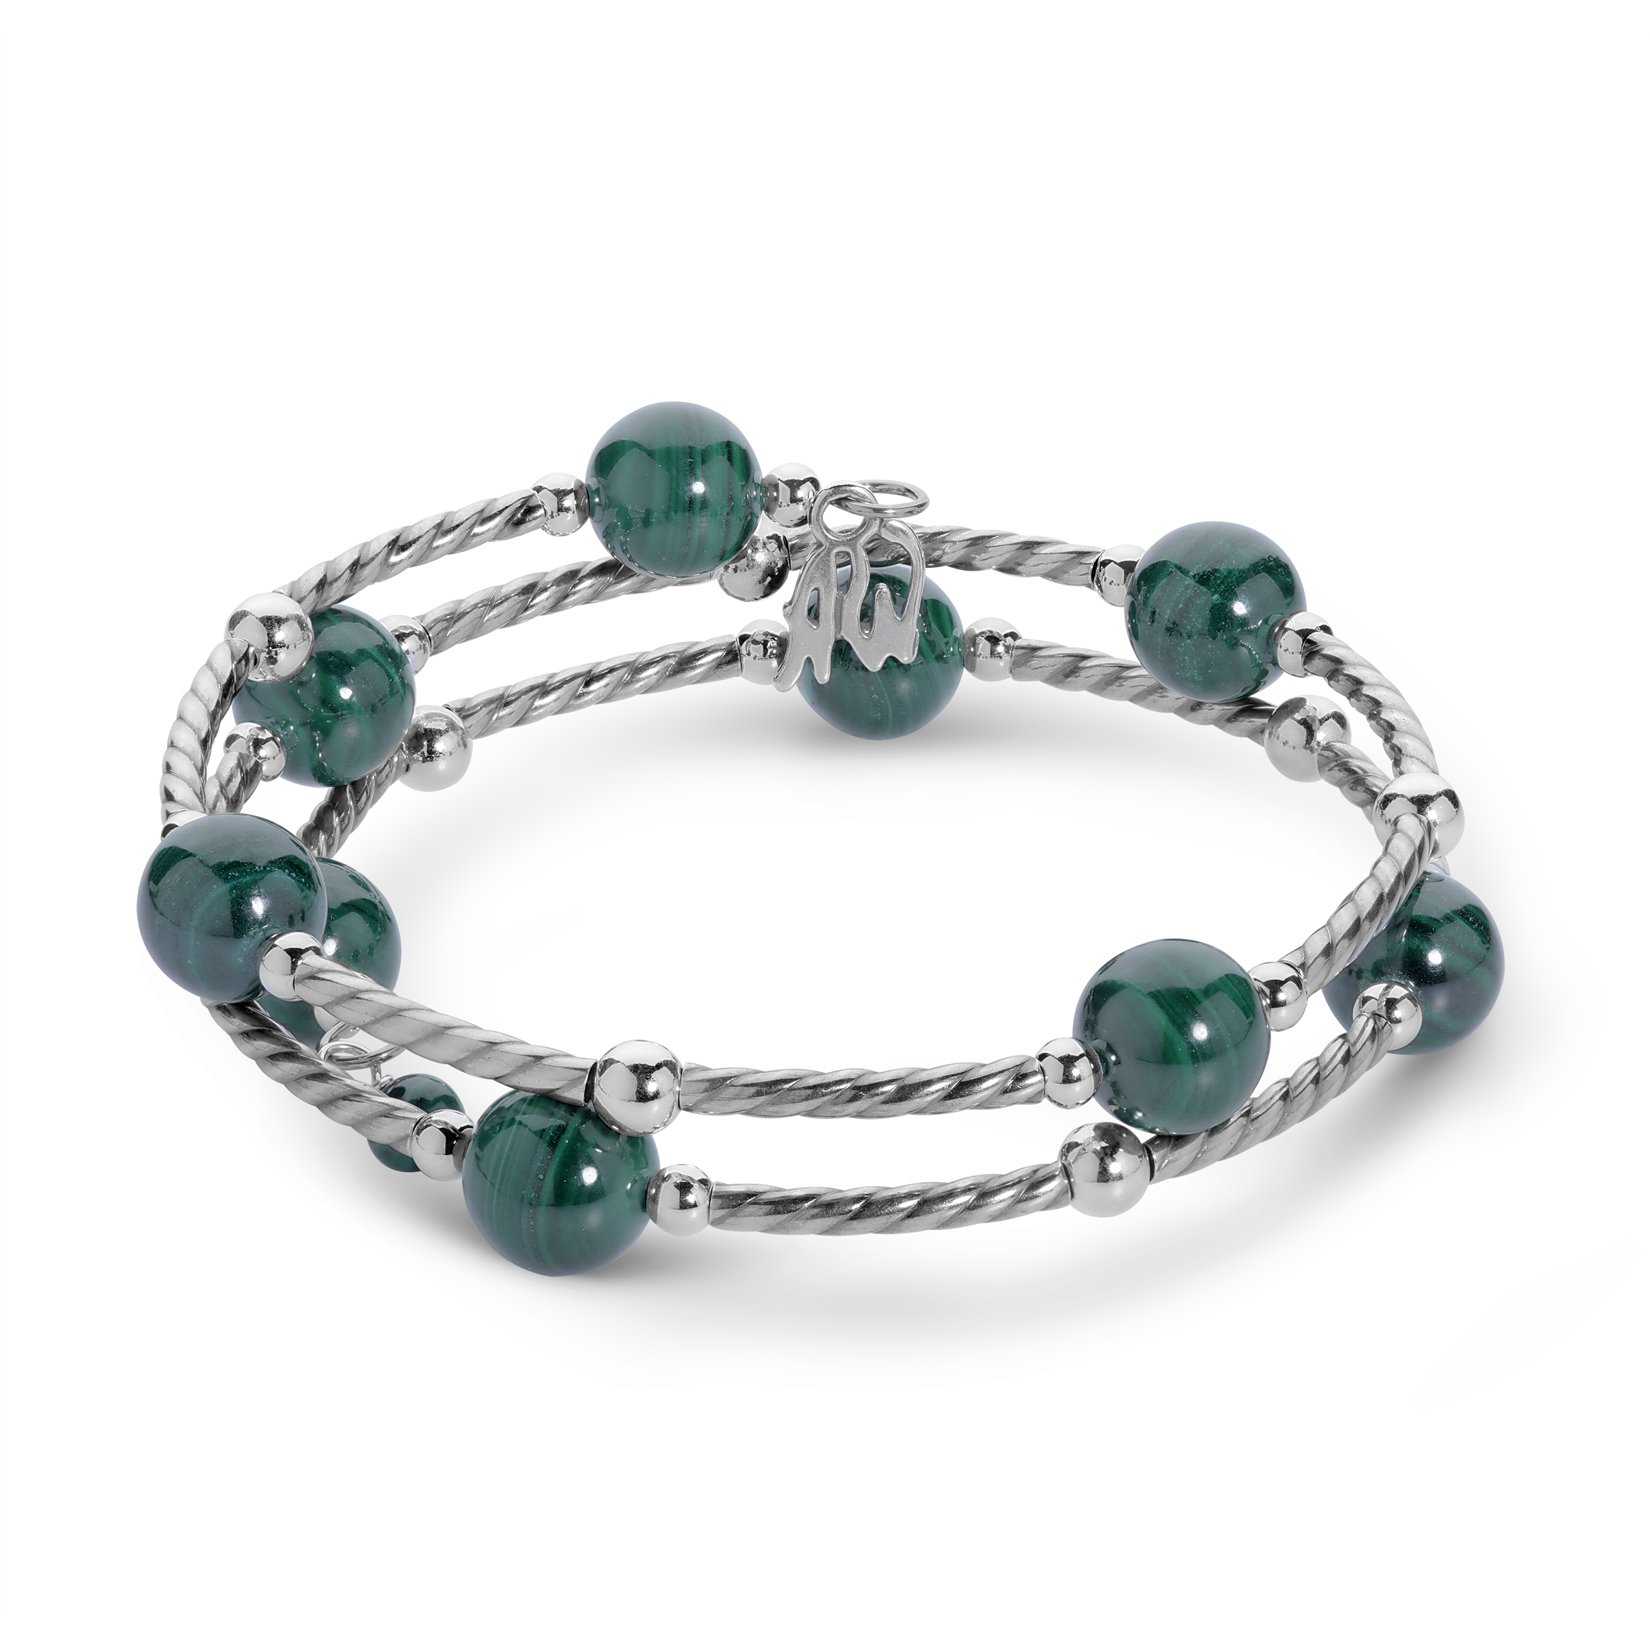 American West 925 Sterling Silver Malachite Coil Bracelet - Classics Collection